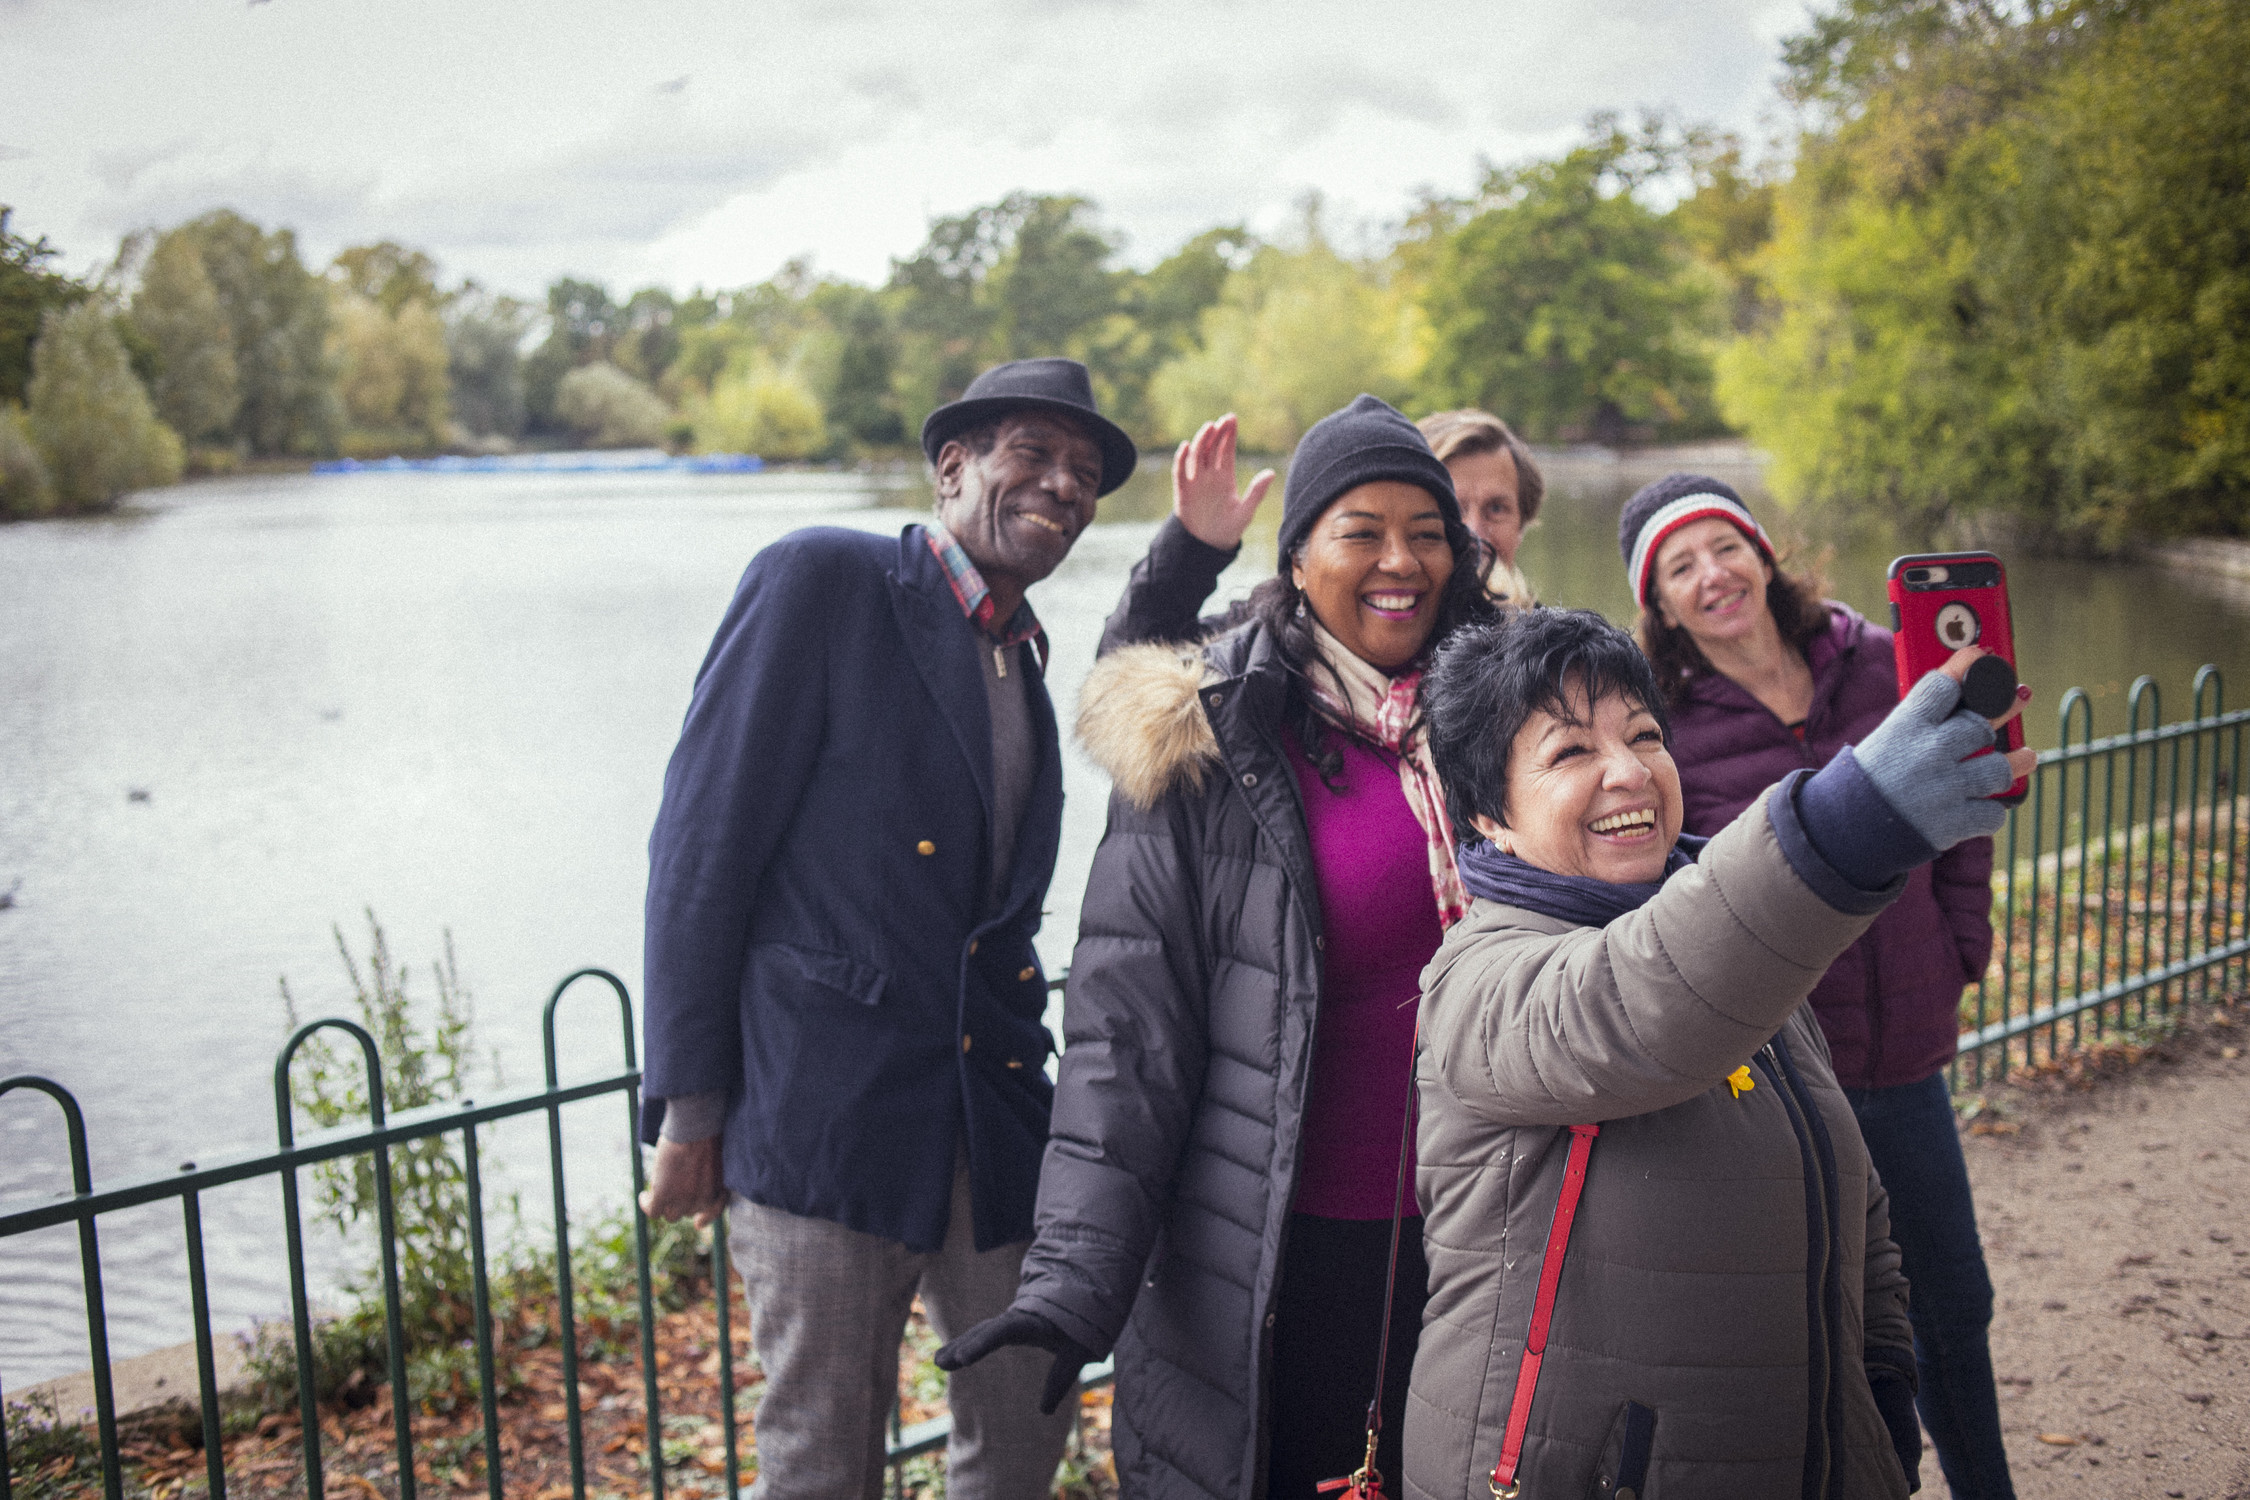 Group taking selfie by lake